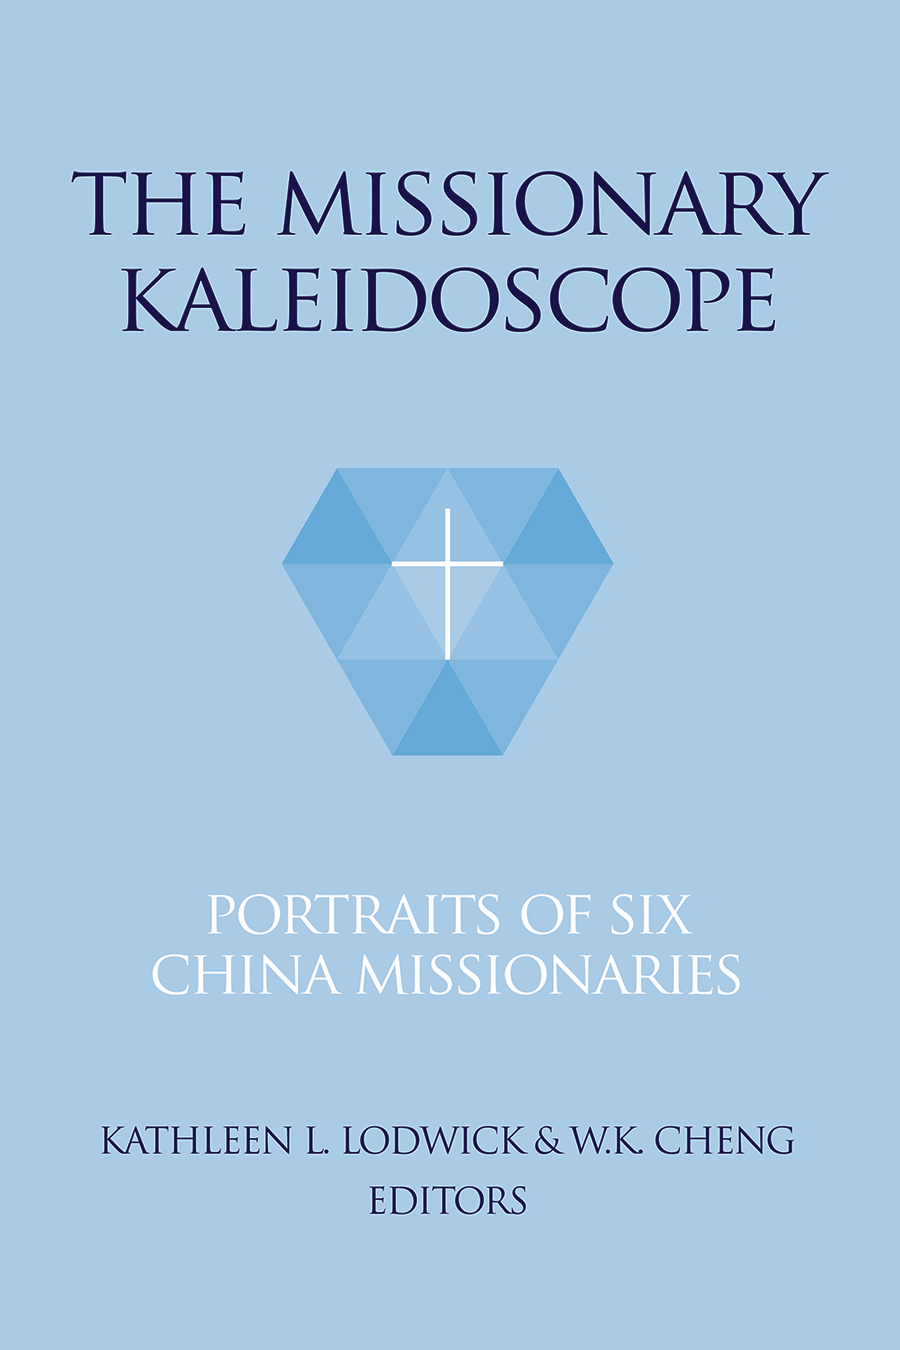 Cover of The Missionary Kaleidoscope